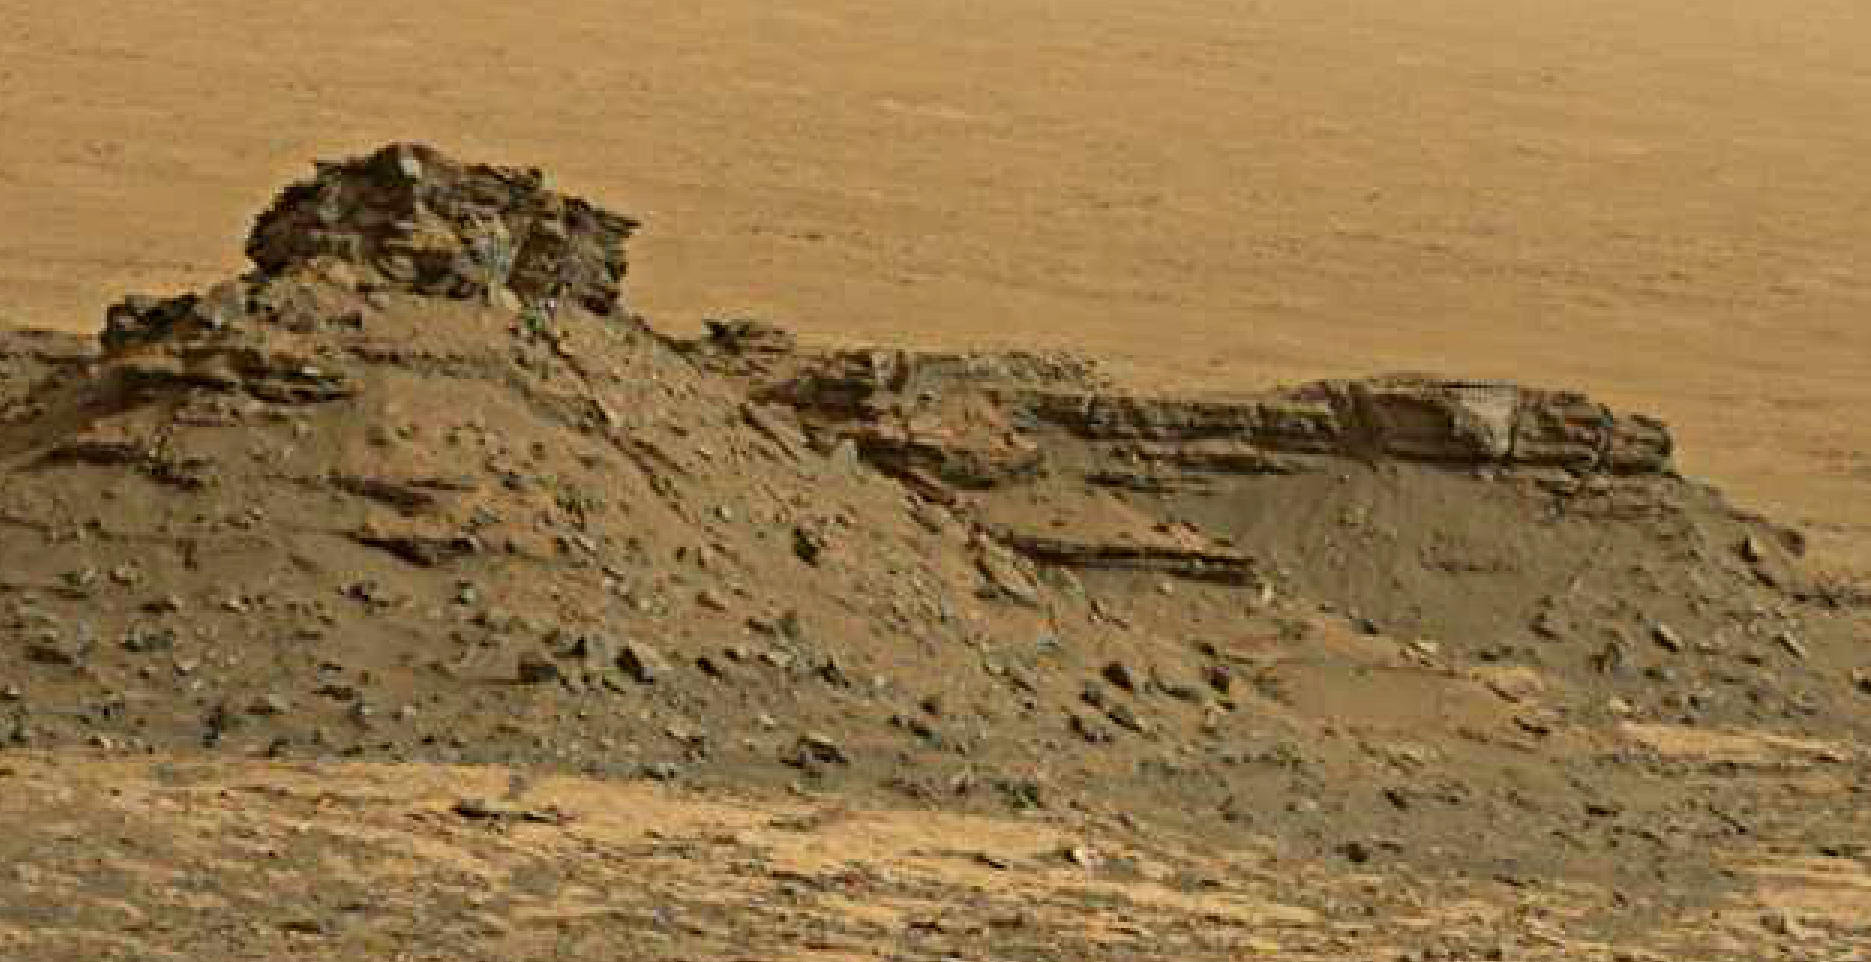 mars sol 1447 anomaly artifacts 1 -bird-plane-butte - was life on mars